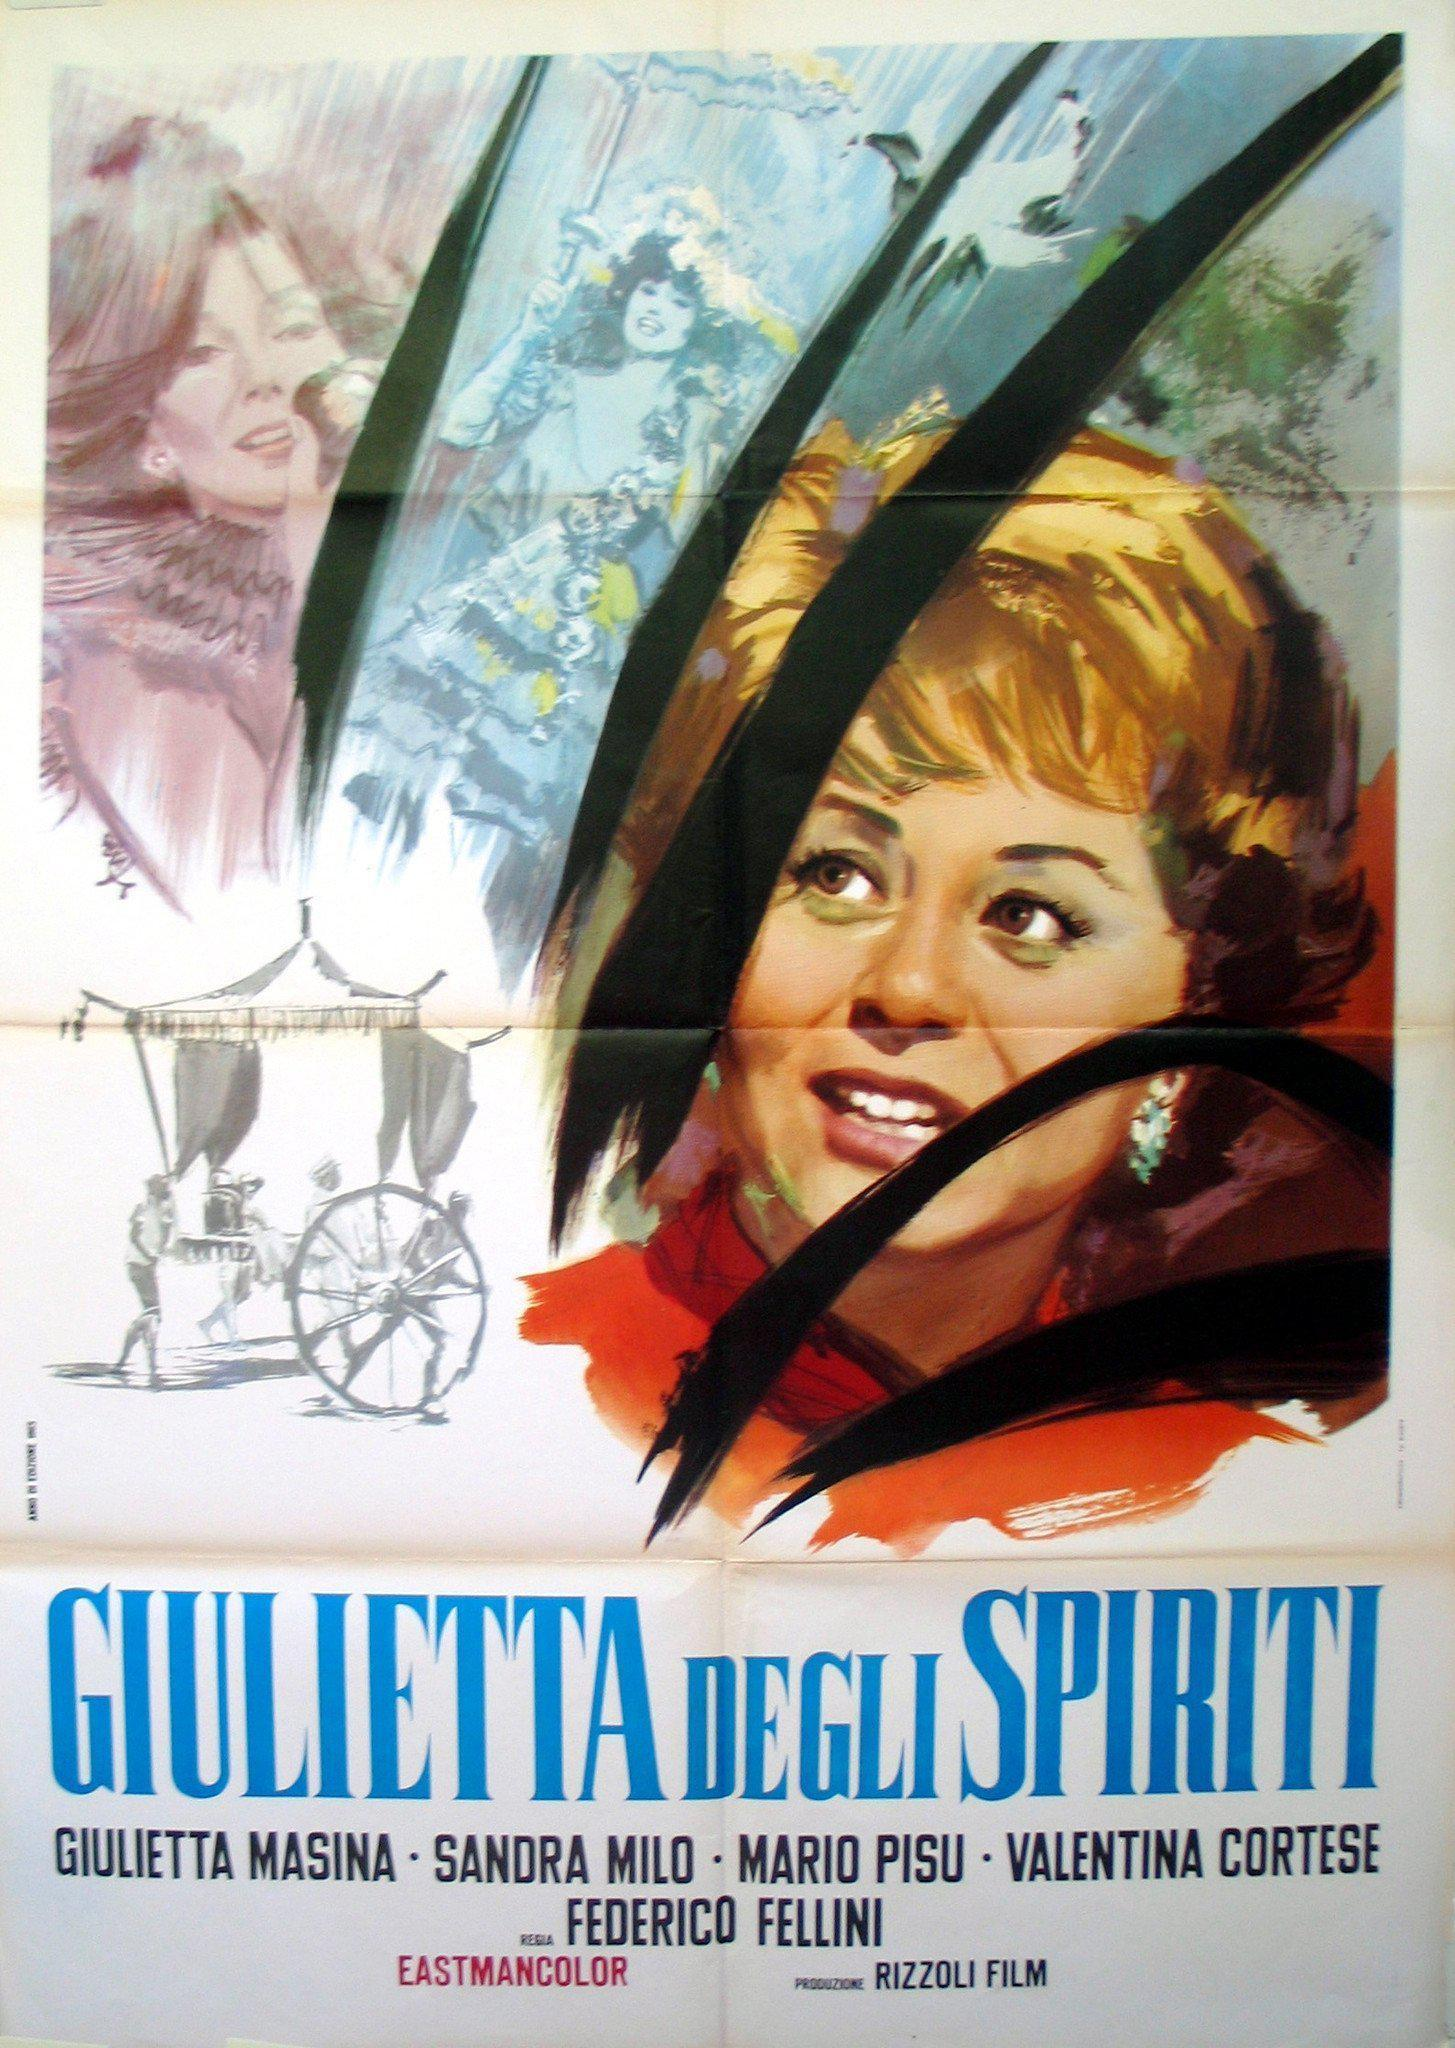 Juliet of the Spirits (Giulietta Degli Spiriti) Italian 2 foglio (39x55) Original Vintage Movie Poster